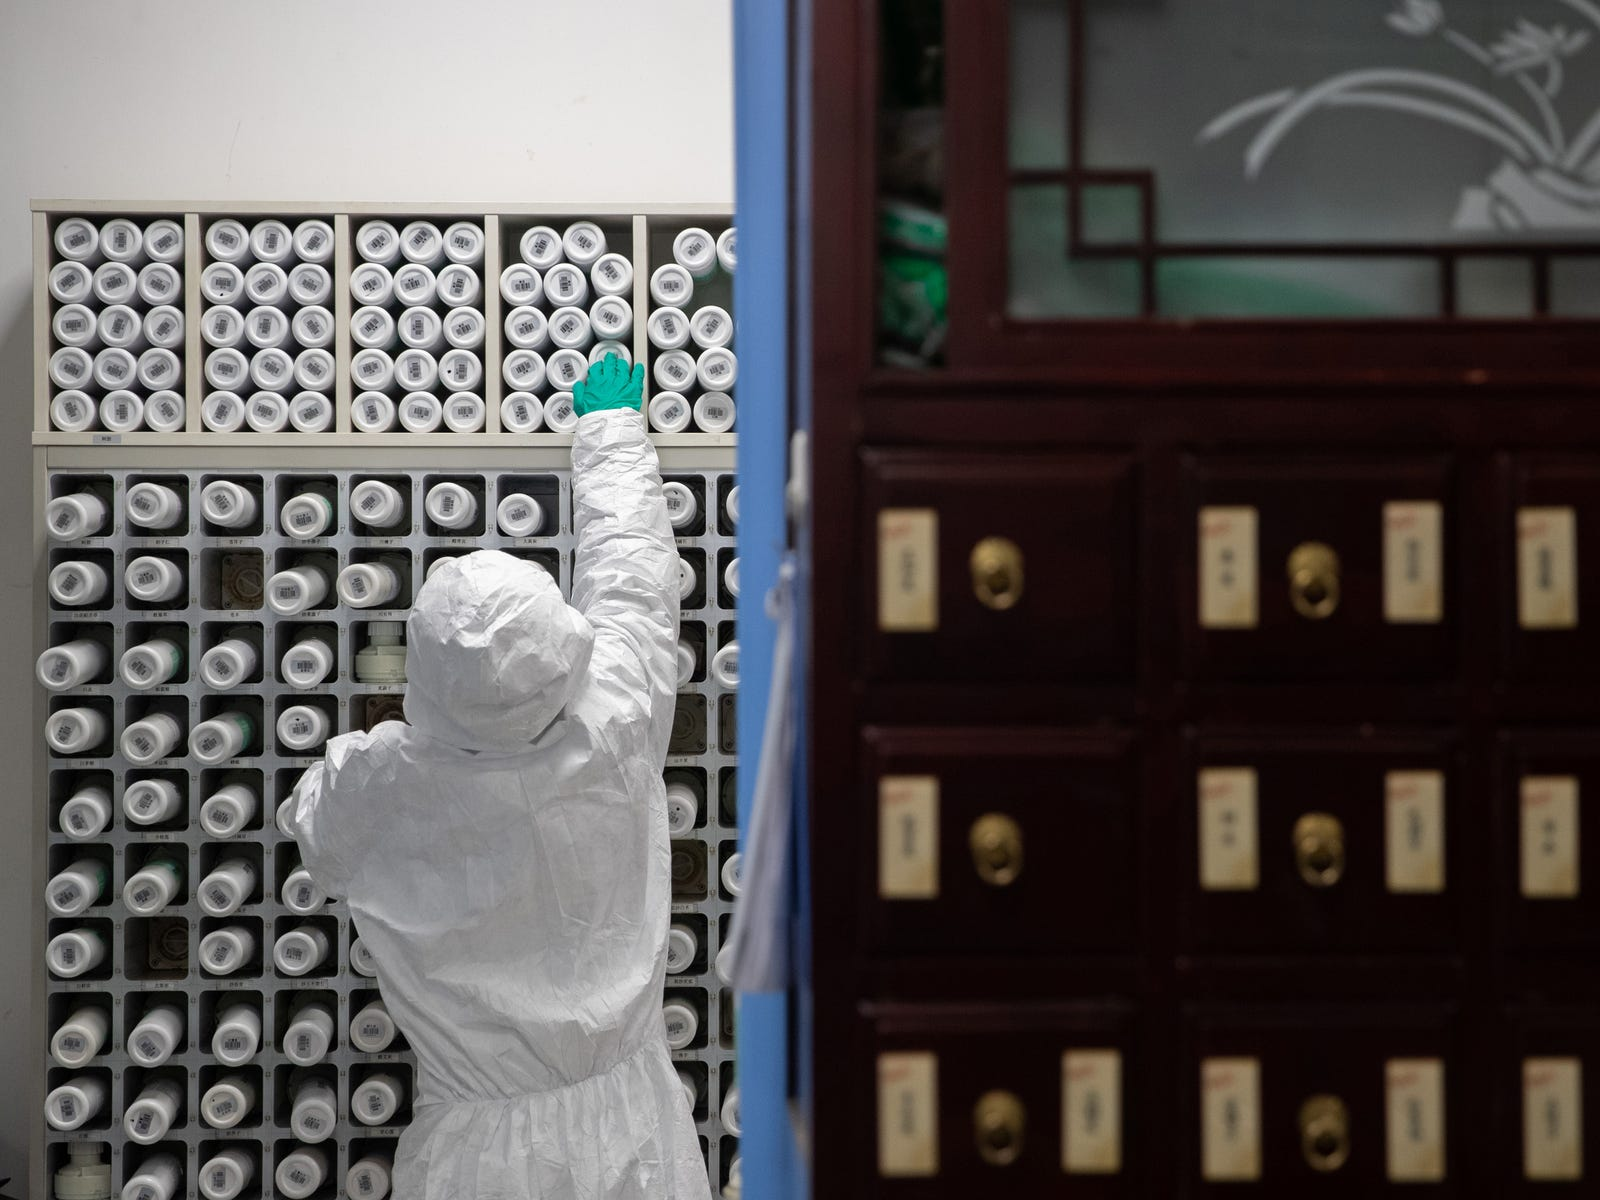 25 scientists were sent to China to research the coronavirus. Here's what they found